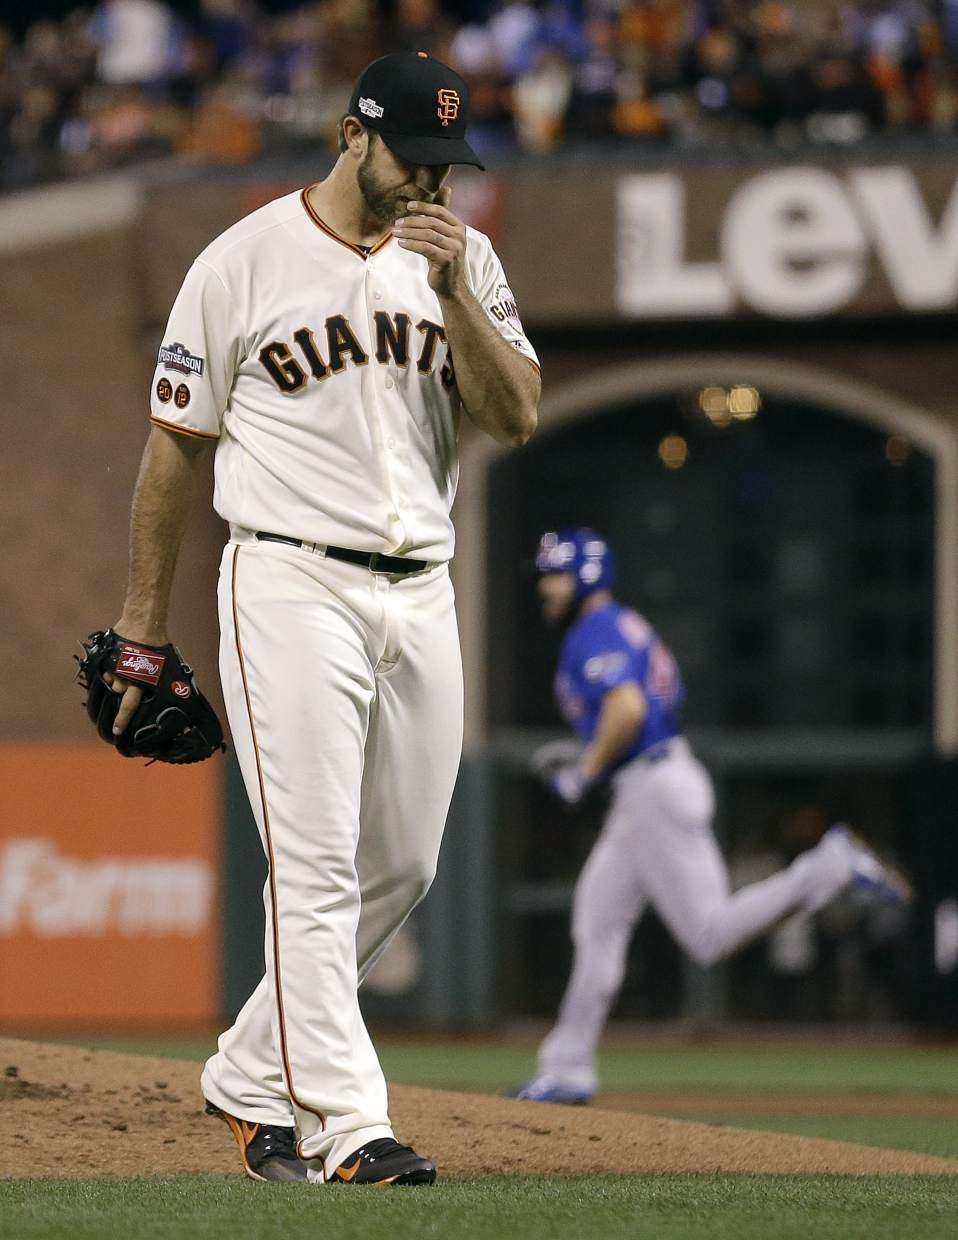 San Francisco Giants pitcher Madison Bumgarner, foreground, reacts after allowing a three-run home run to Chicago Cubs' Jake Arrieta, rear, during the second inning of Game 3 of baseball's National League Division Series in San Francisco, Monday, Oct. 10, 2016. (AP Photo/Ben Margot)